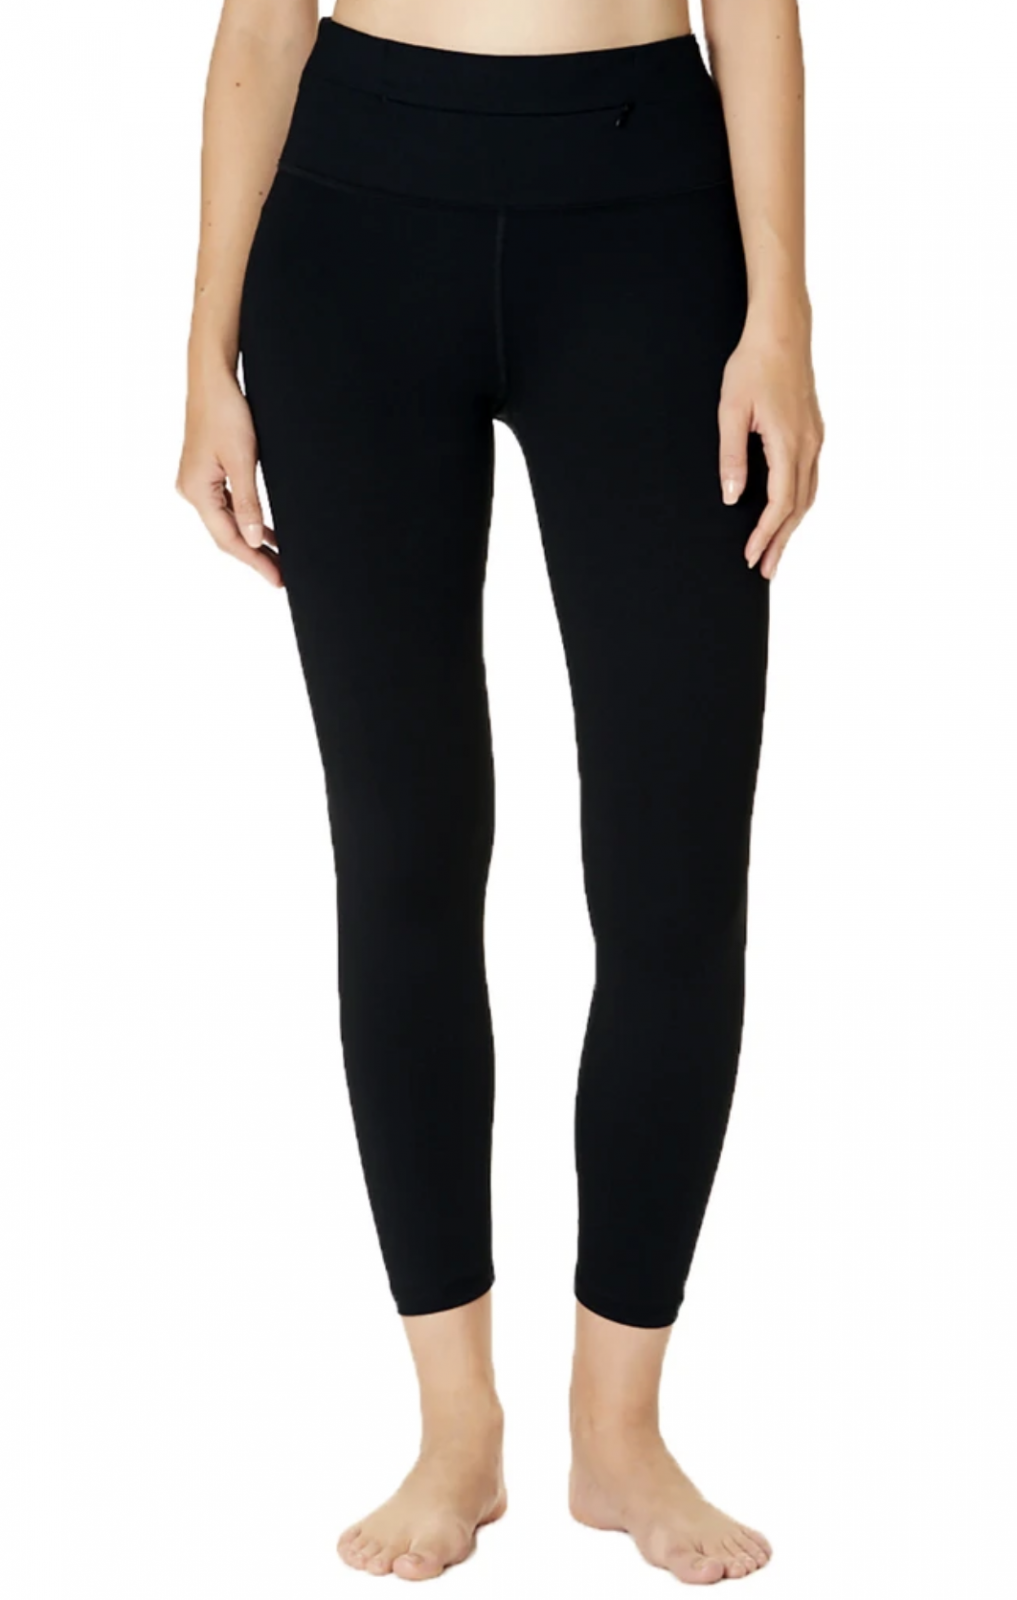 Ultralight Hi Waist 7/8th Legging